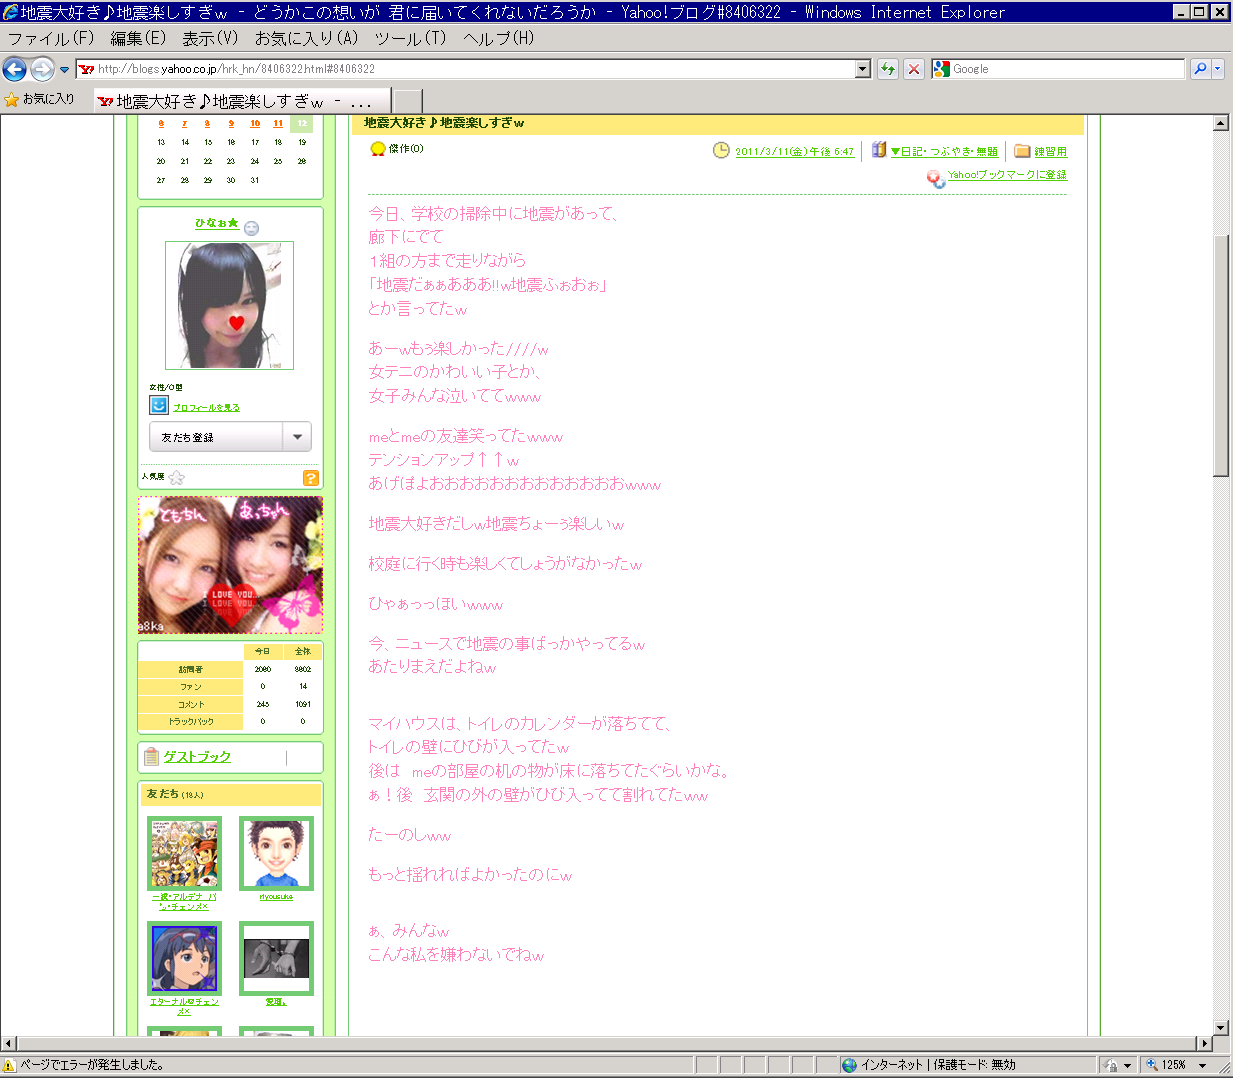 20110312094541.png